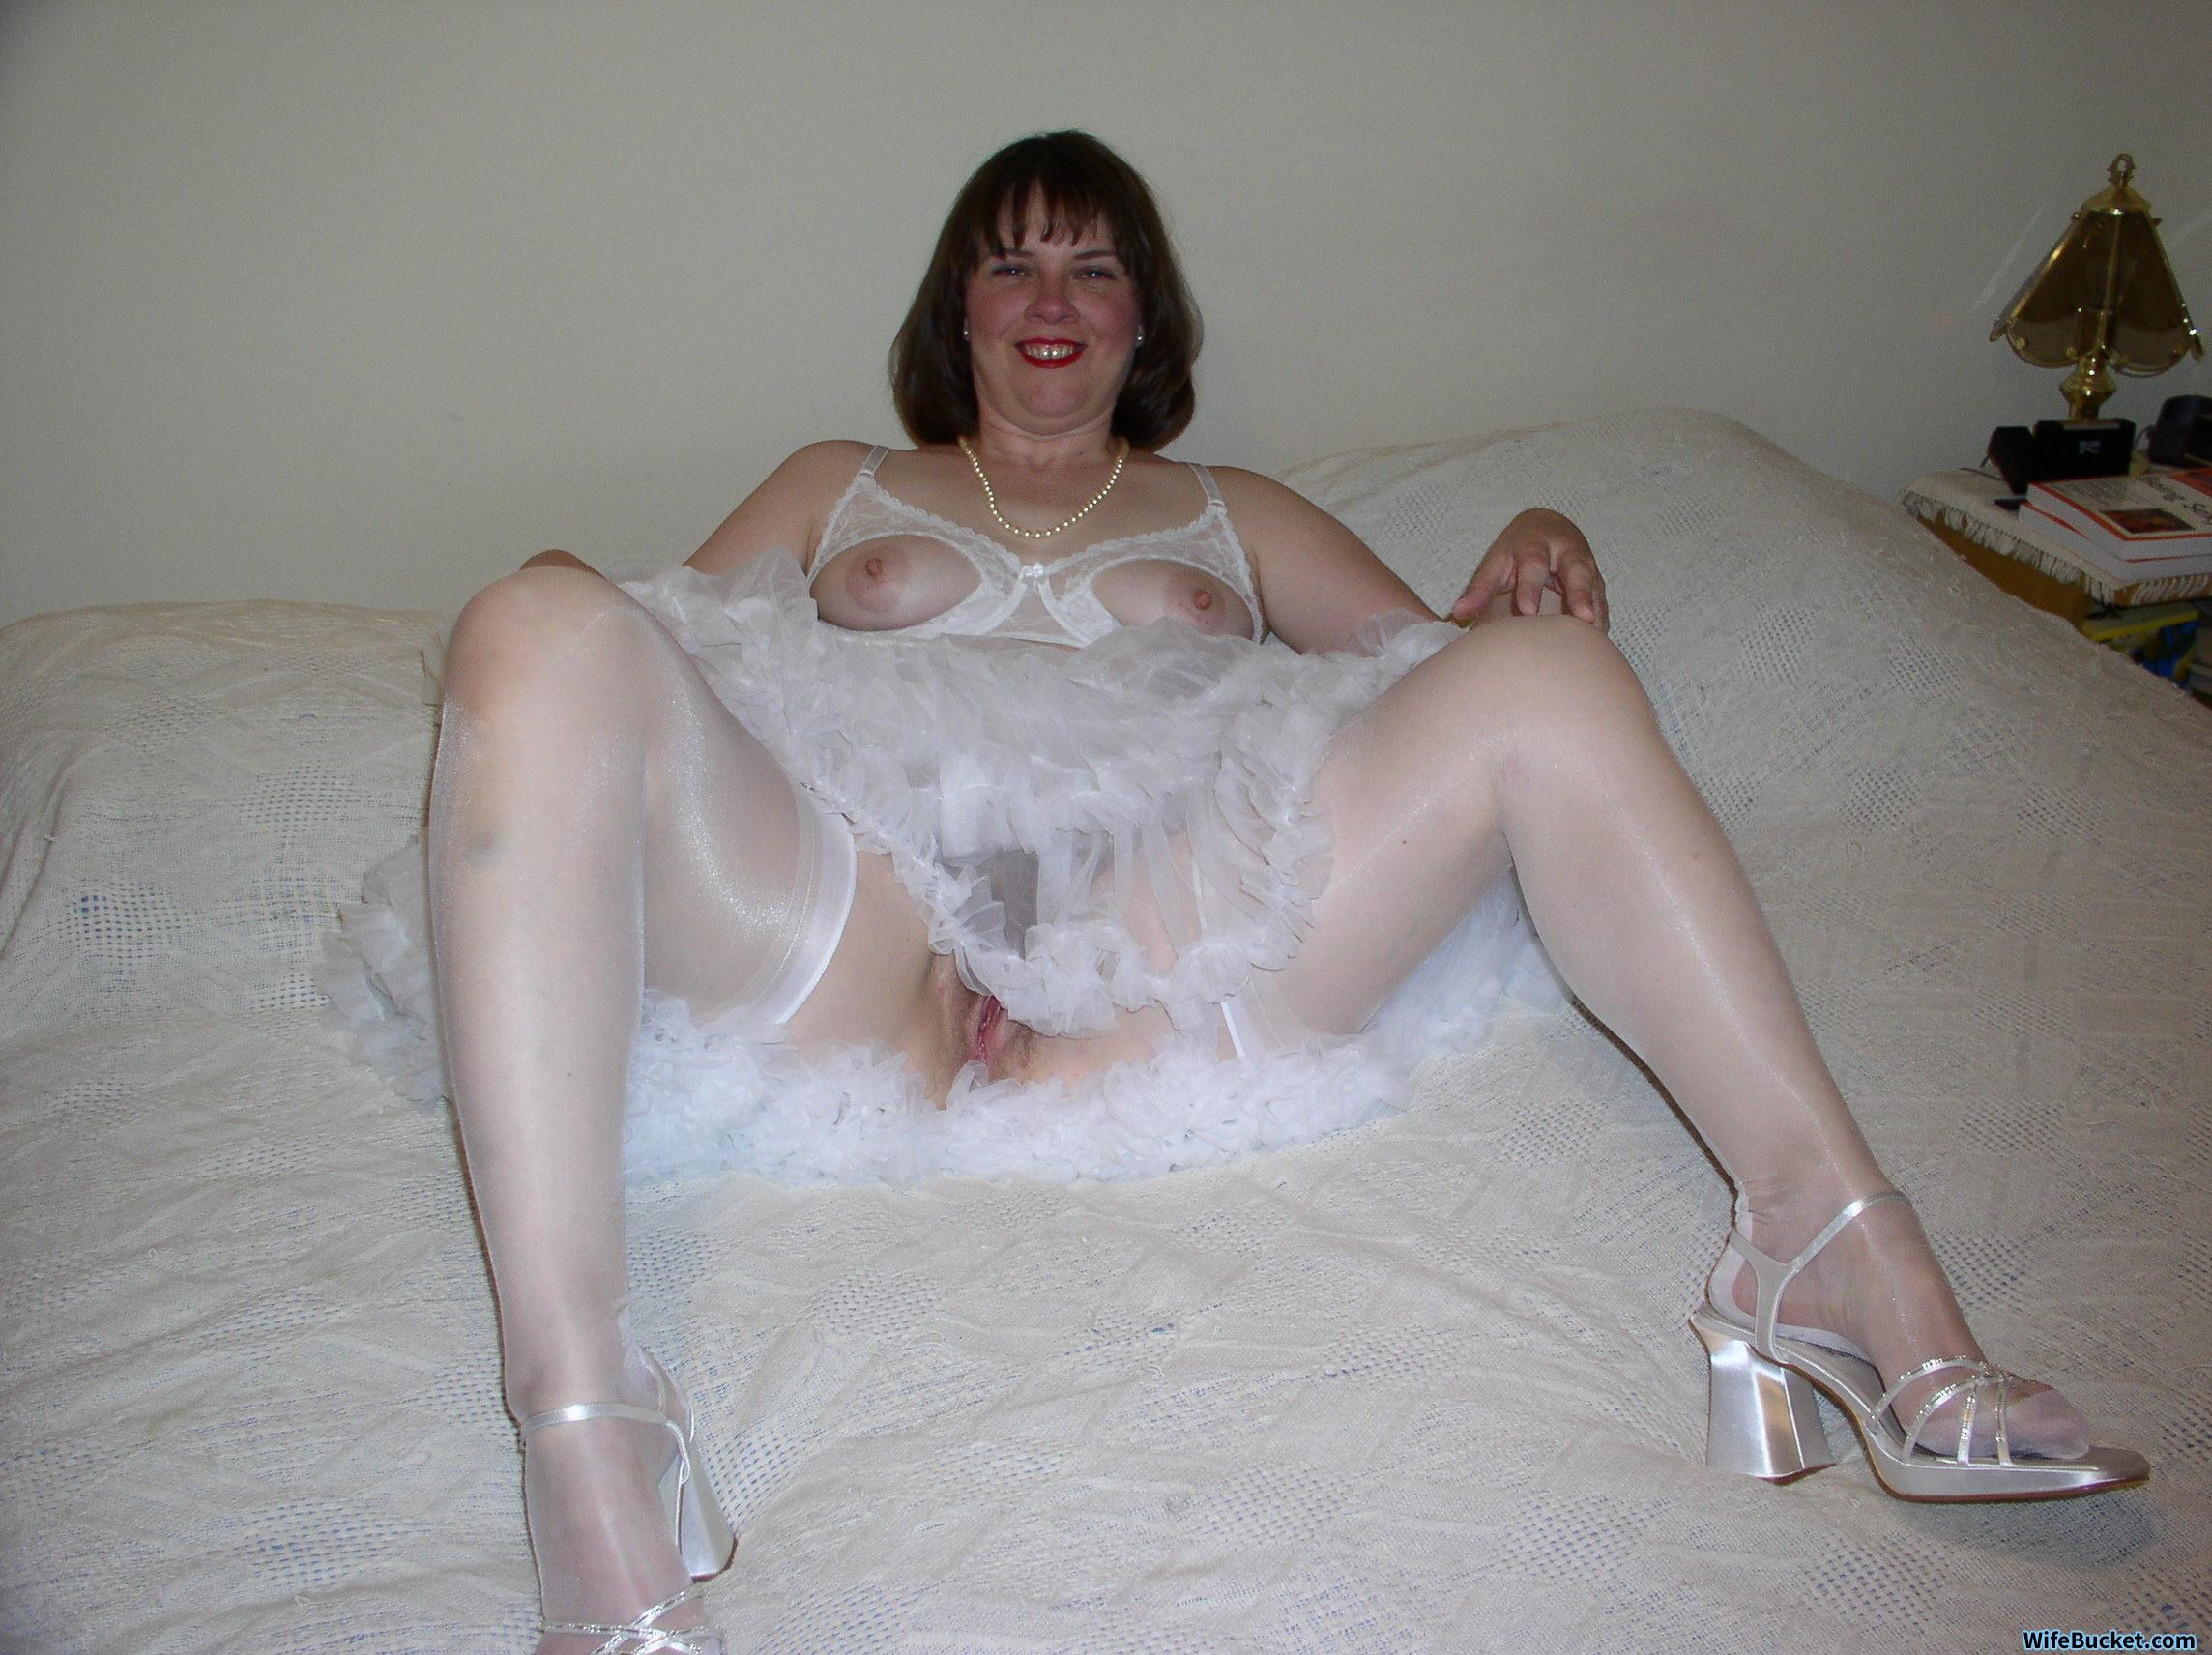 Nude Brides And Honeymoon Sex Archives  Wifebucket -2838